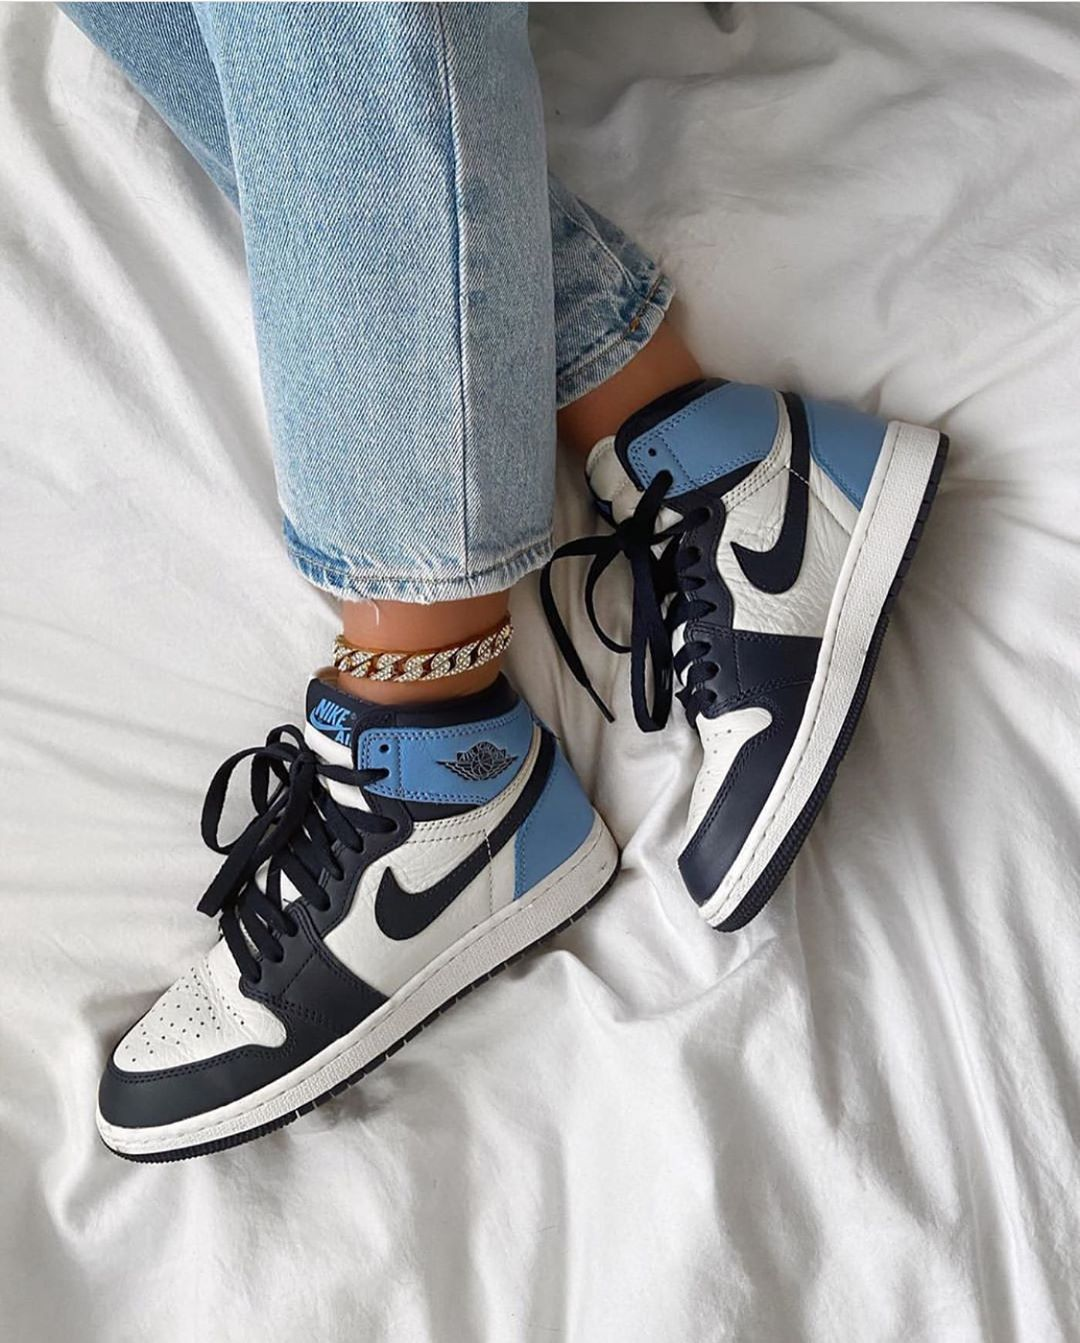 Jordan 1 Retro High Obsidian UNC- # High #jordan #obsidian ...